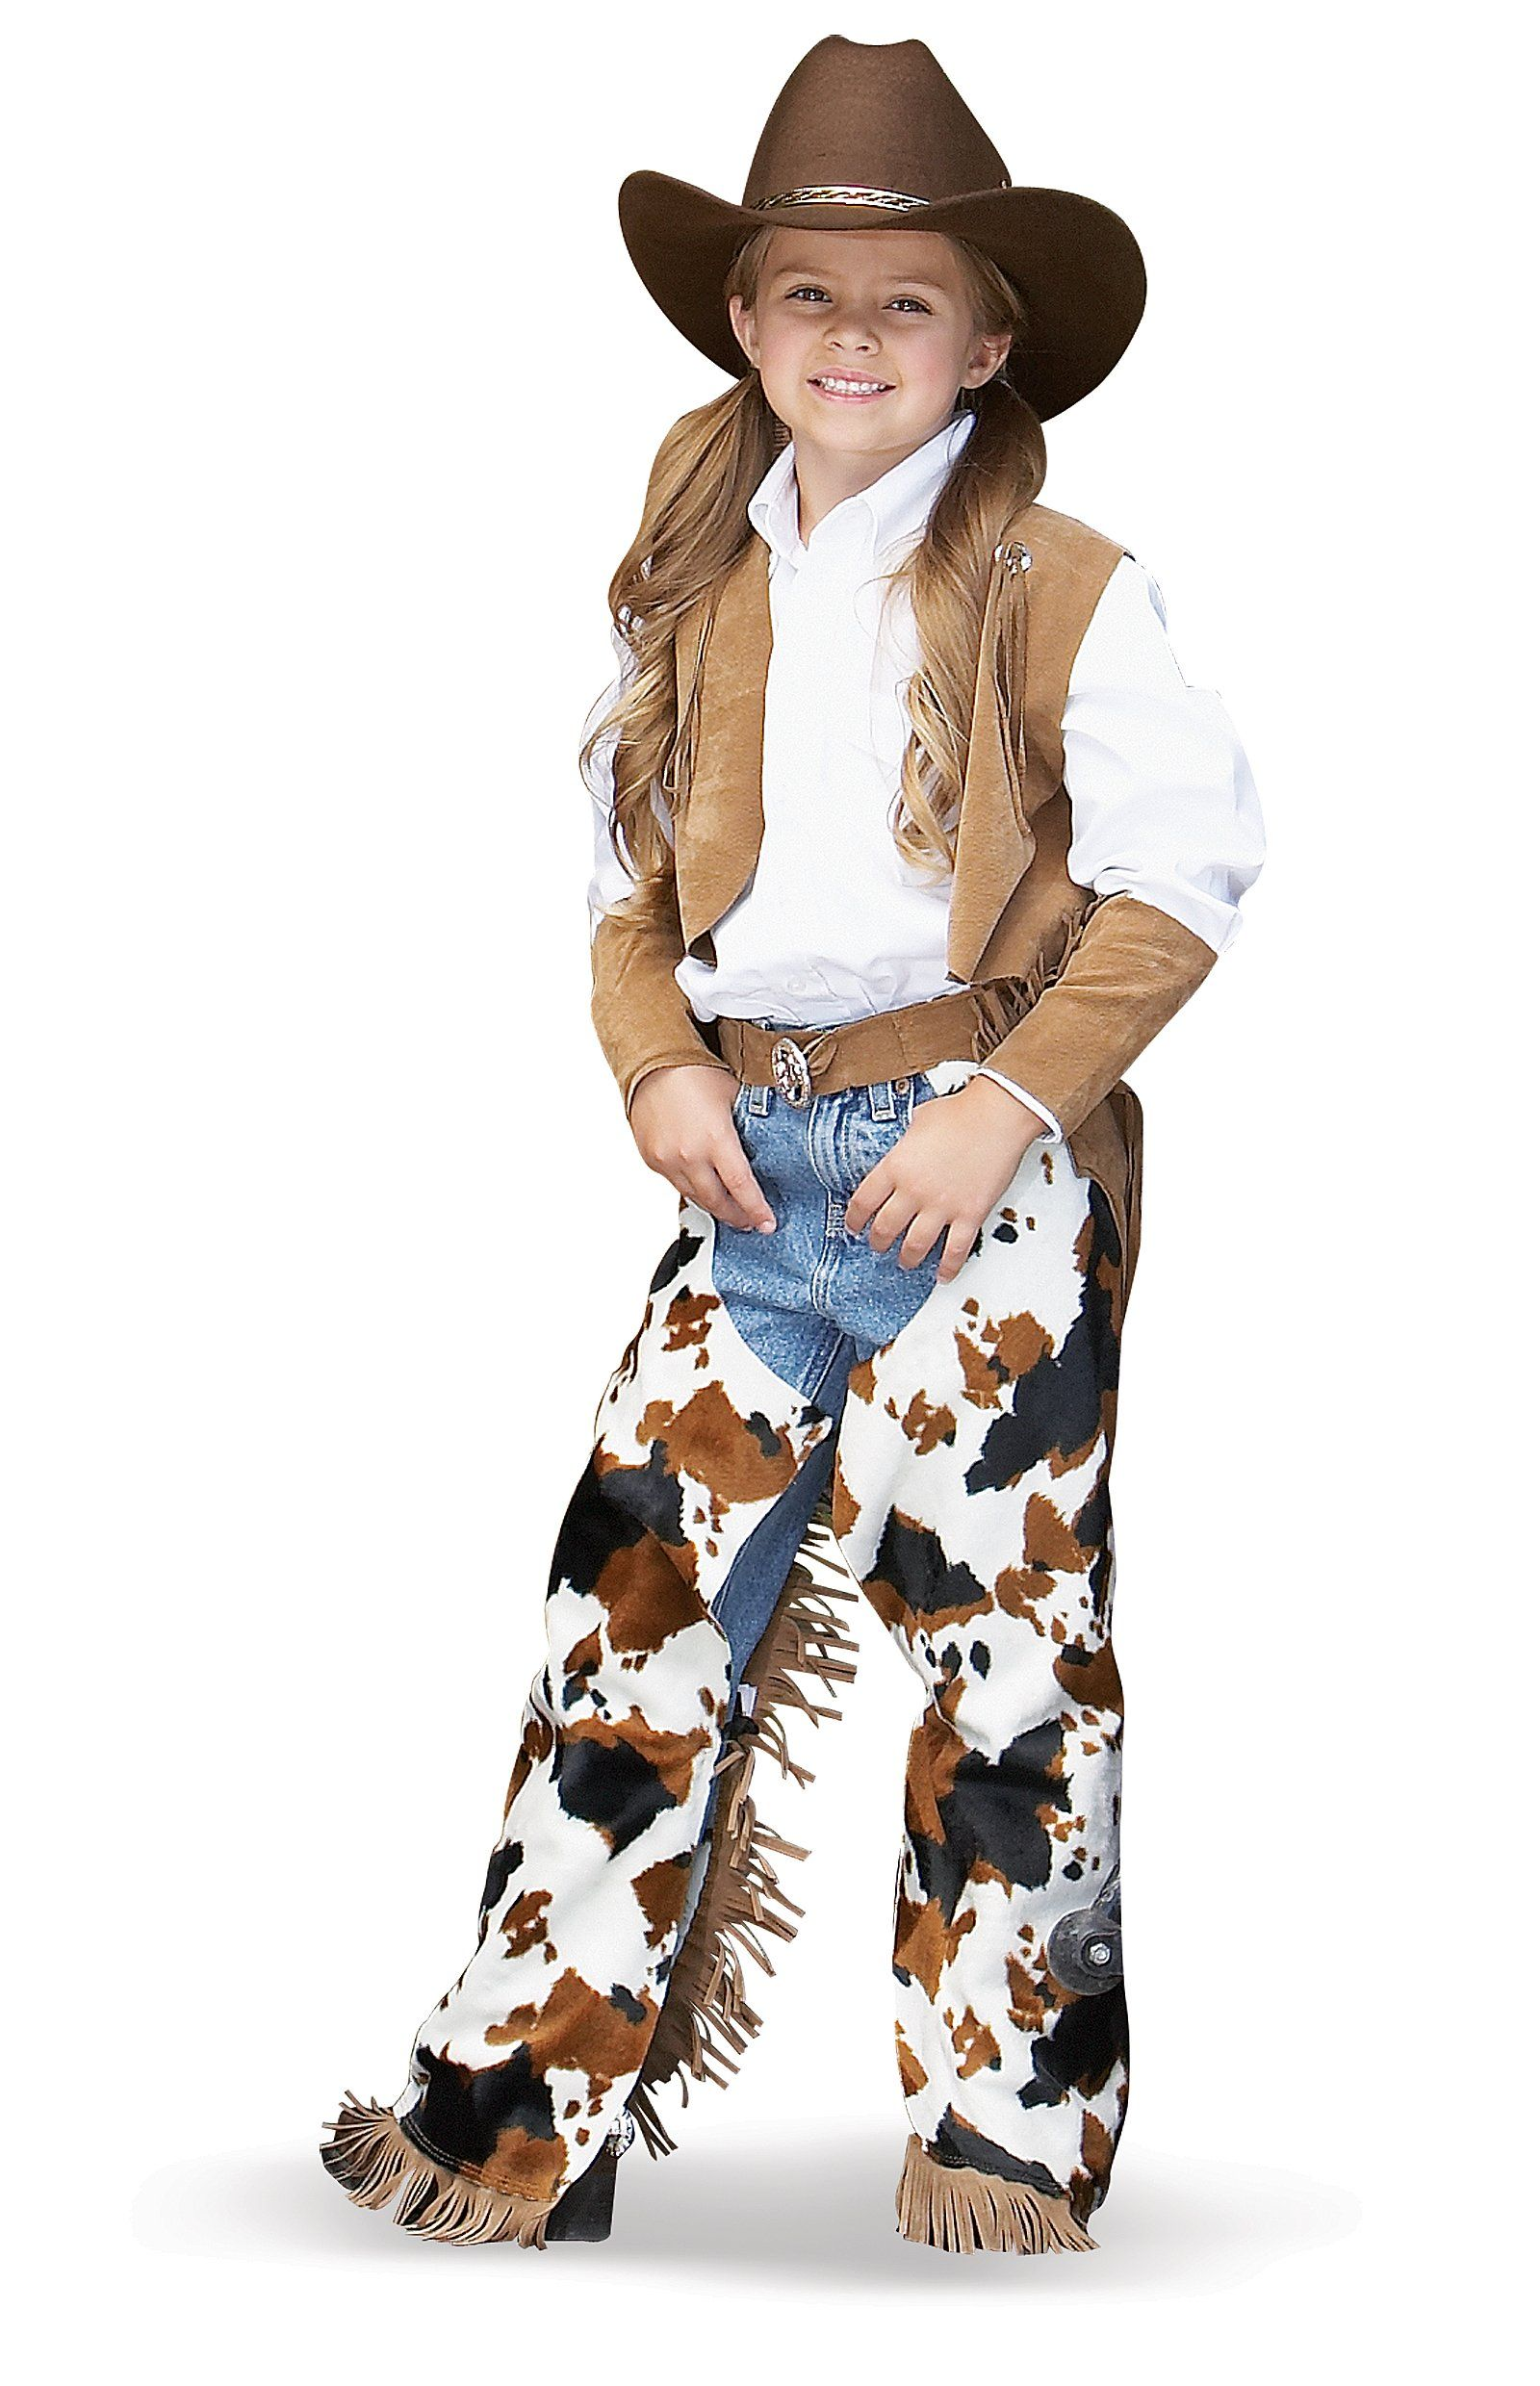 Cowboy/Cowgirl Child Costume | Children costumes, Costumes and ...